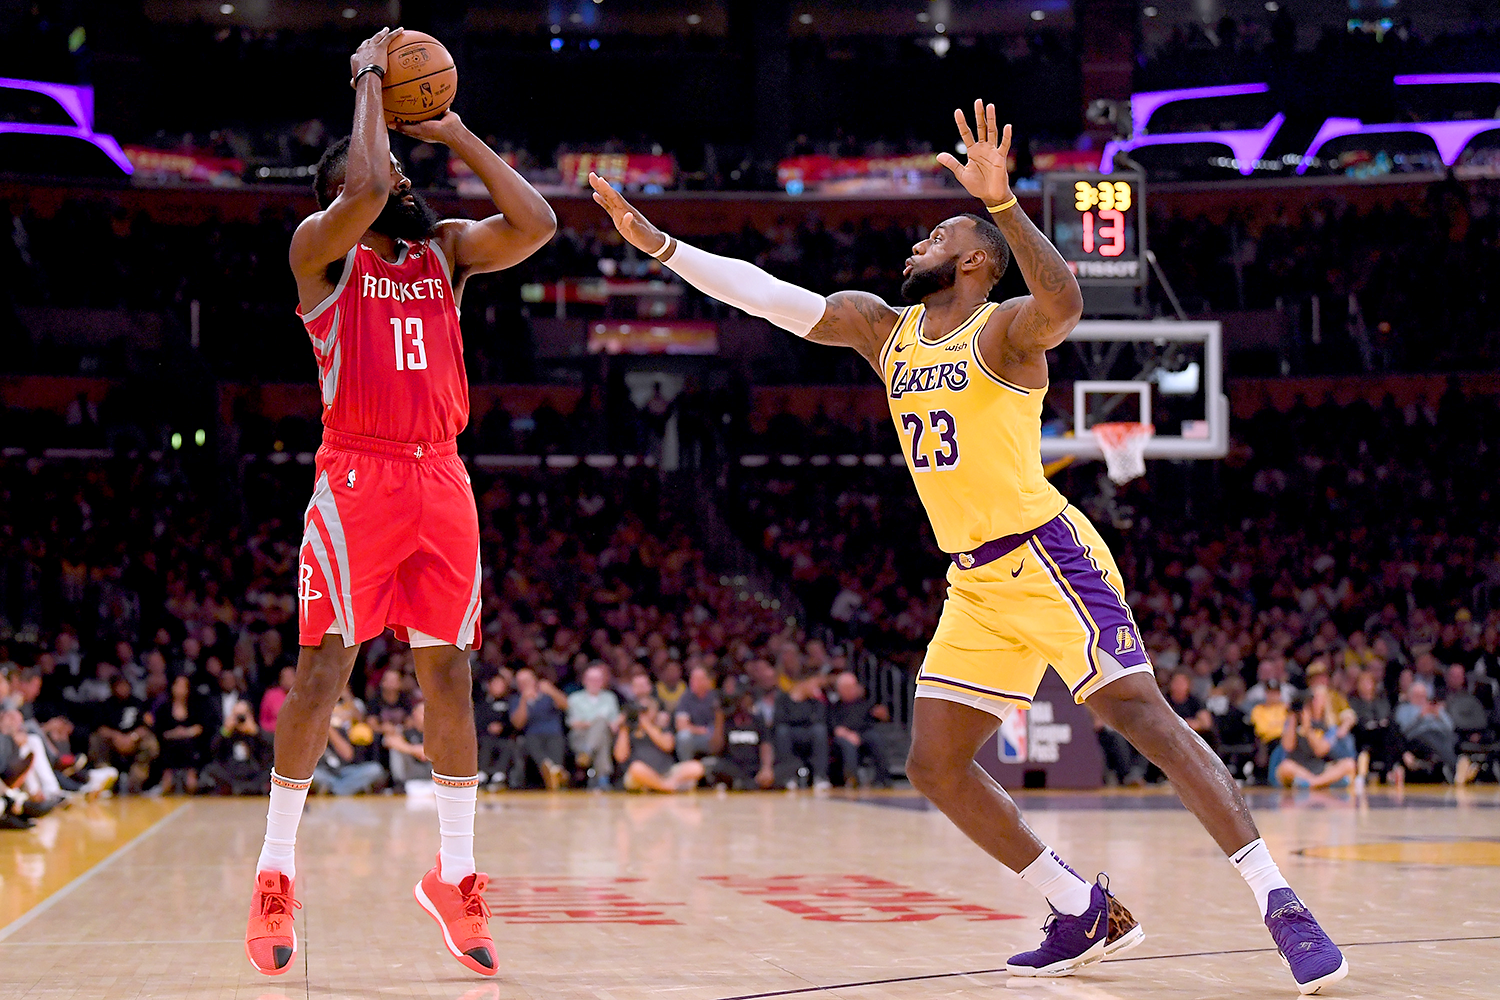 Sports Science Found James Harden's Superpower—Full Stop, It's Not the Beard